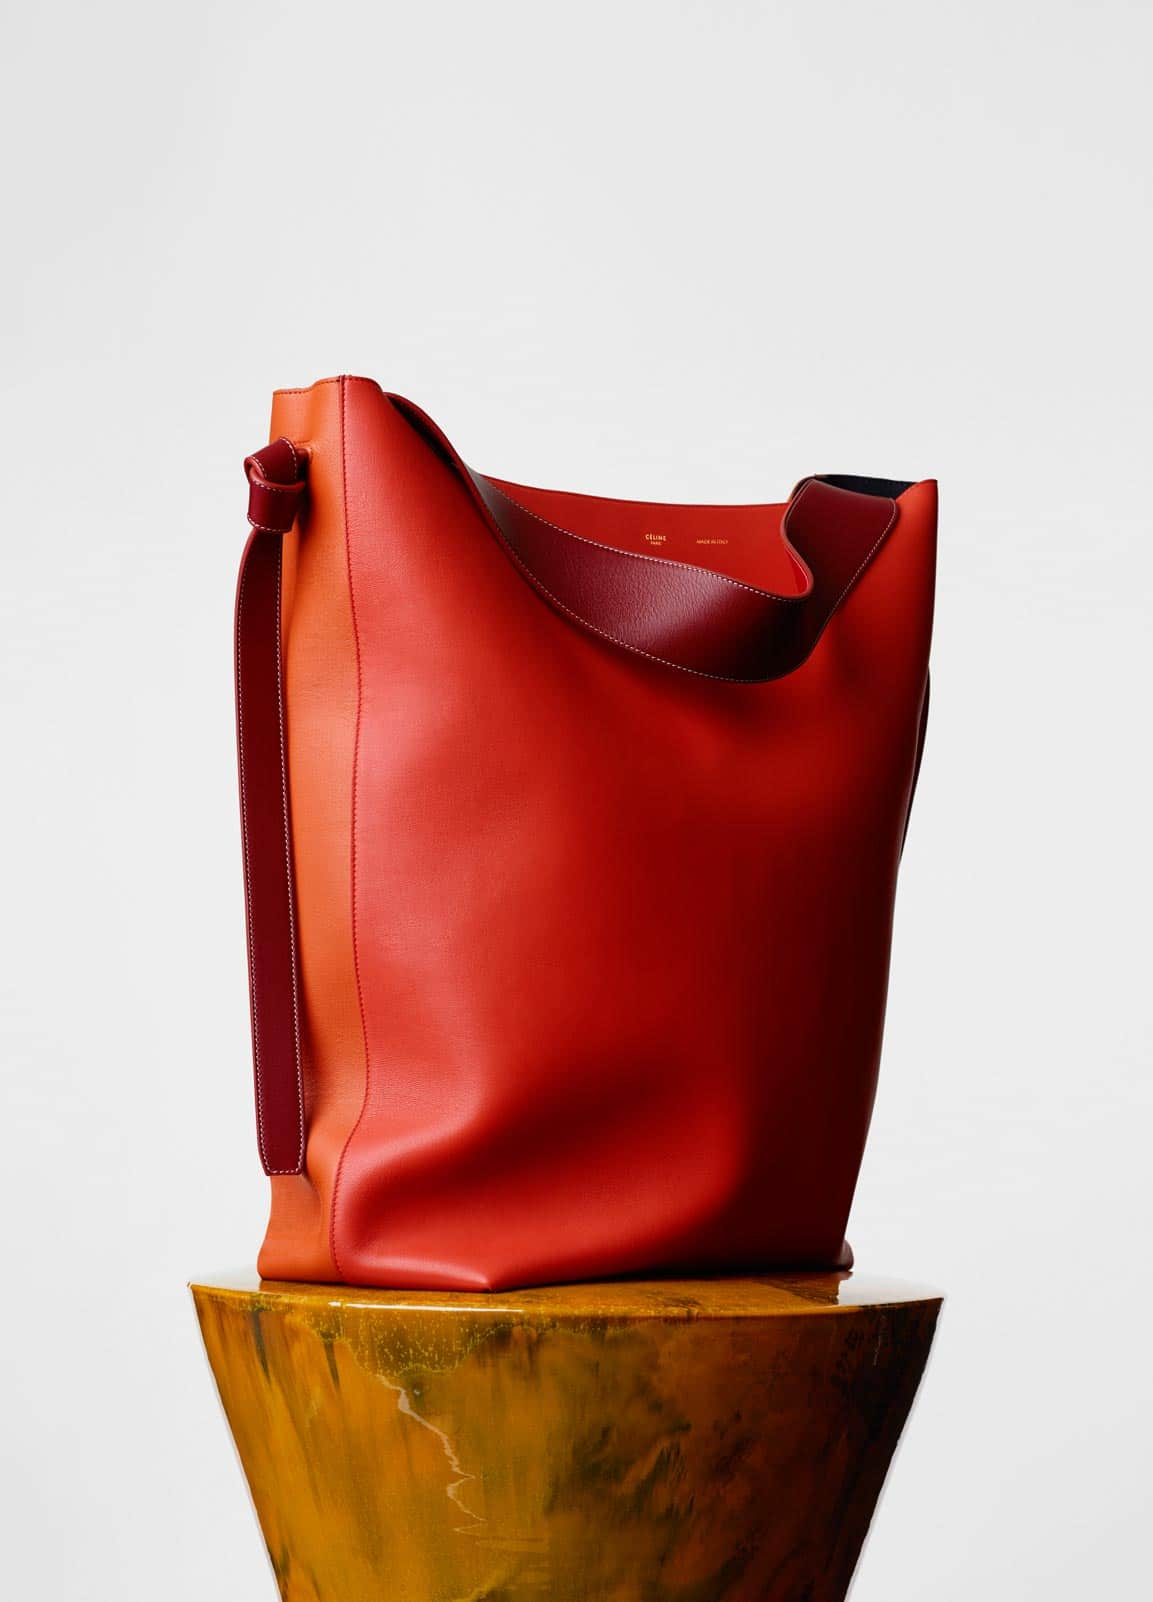 can you buy celine bags online - Celine Winter 2015 Bag Collection Featuring Subtropical Shades and ...